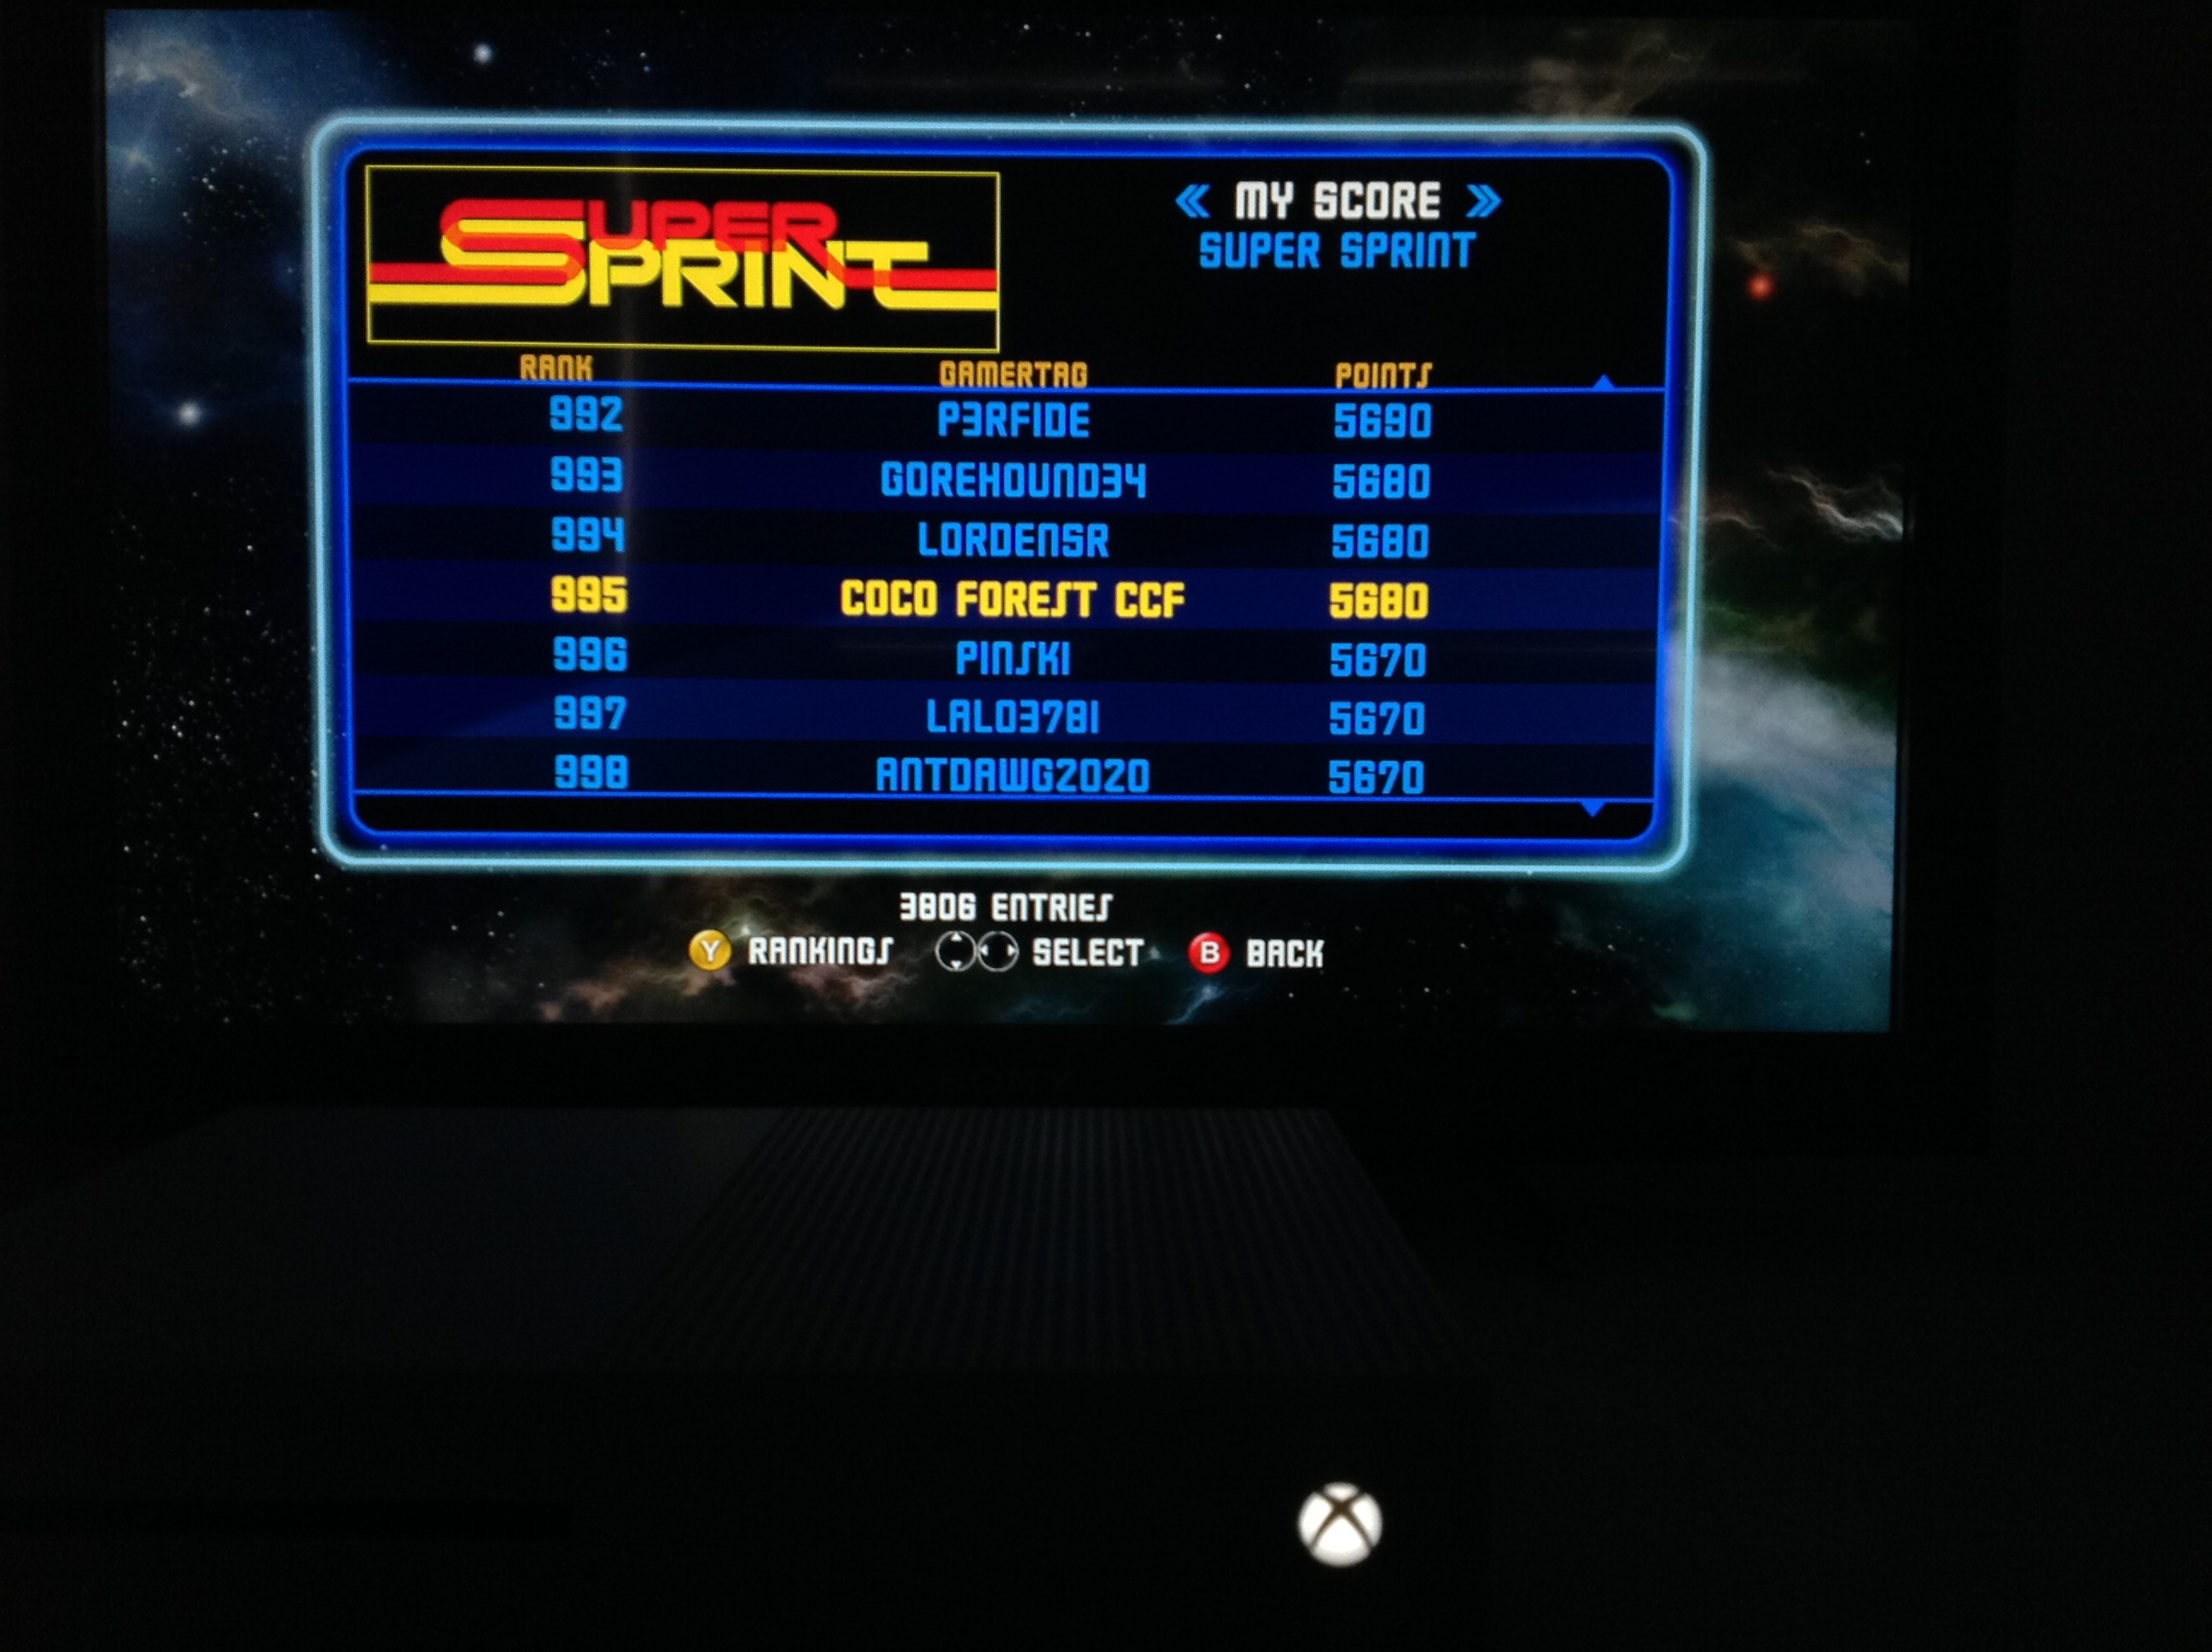 CoCoForest: Midway Arcade Origins: Super Sprint (Xbox 360) 5,680 points on 2019-05-26 14:24:49